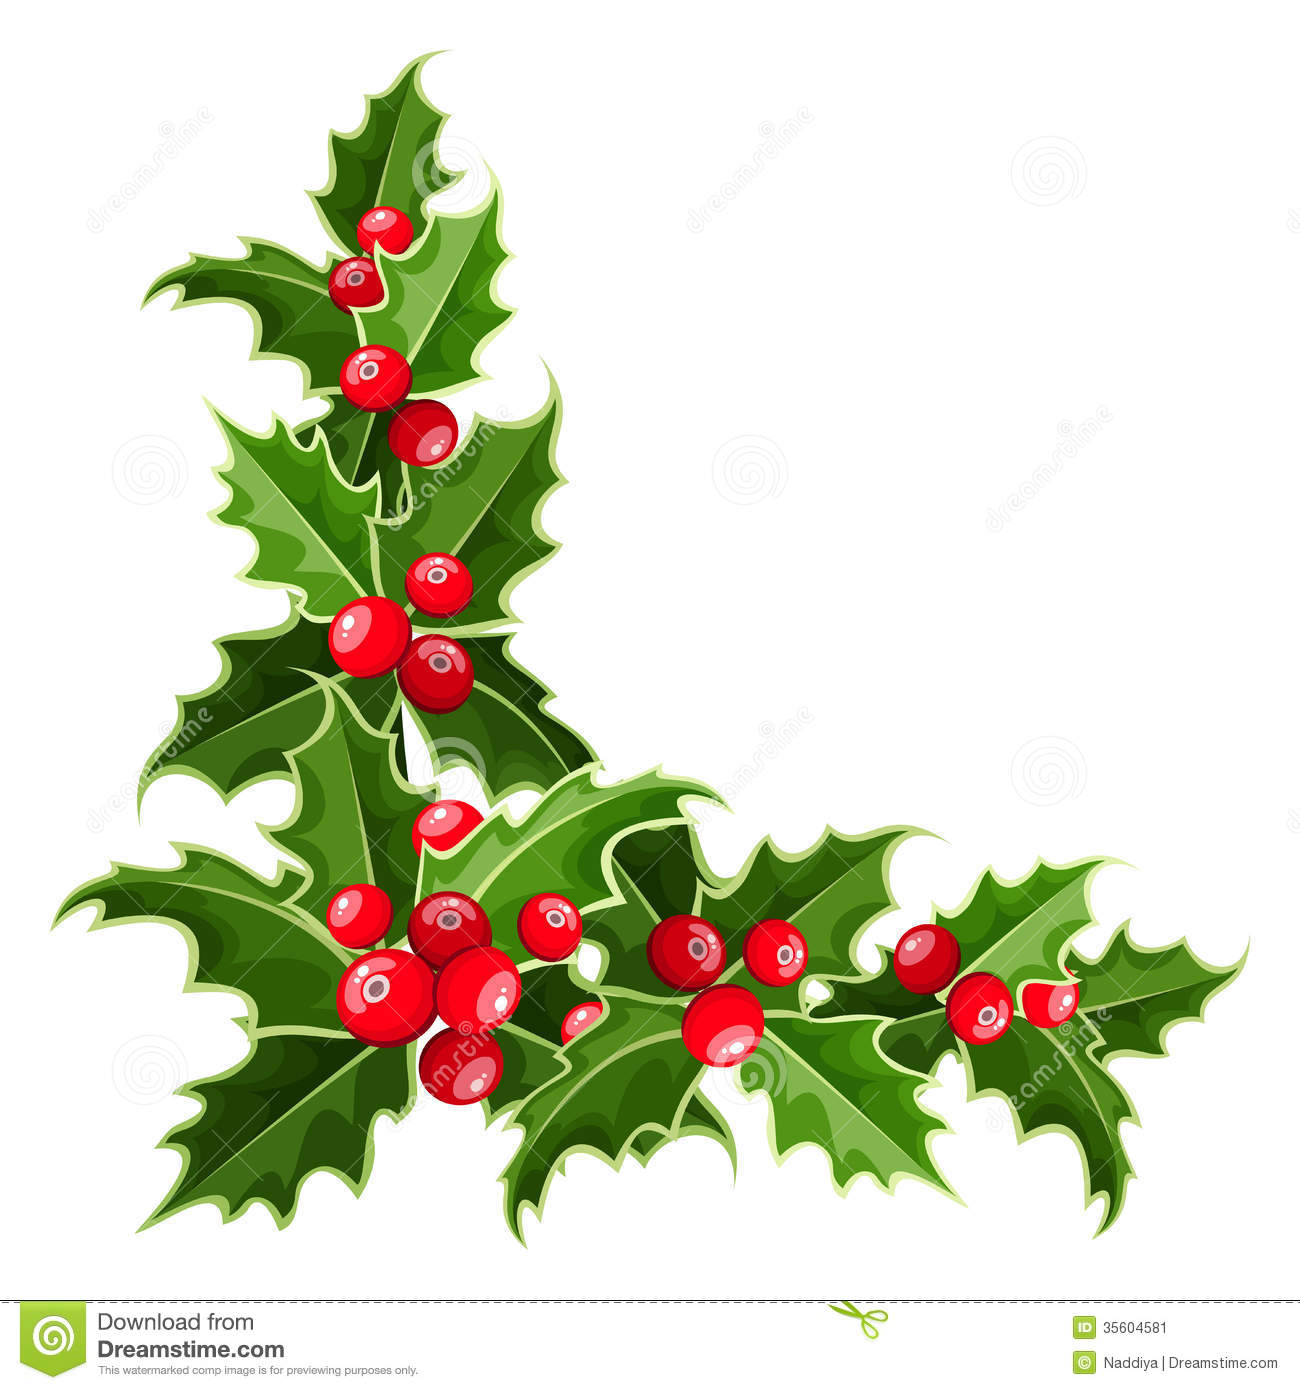 Decorative corner with christmas holly stock vector for Holl image